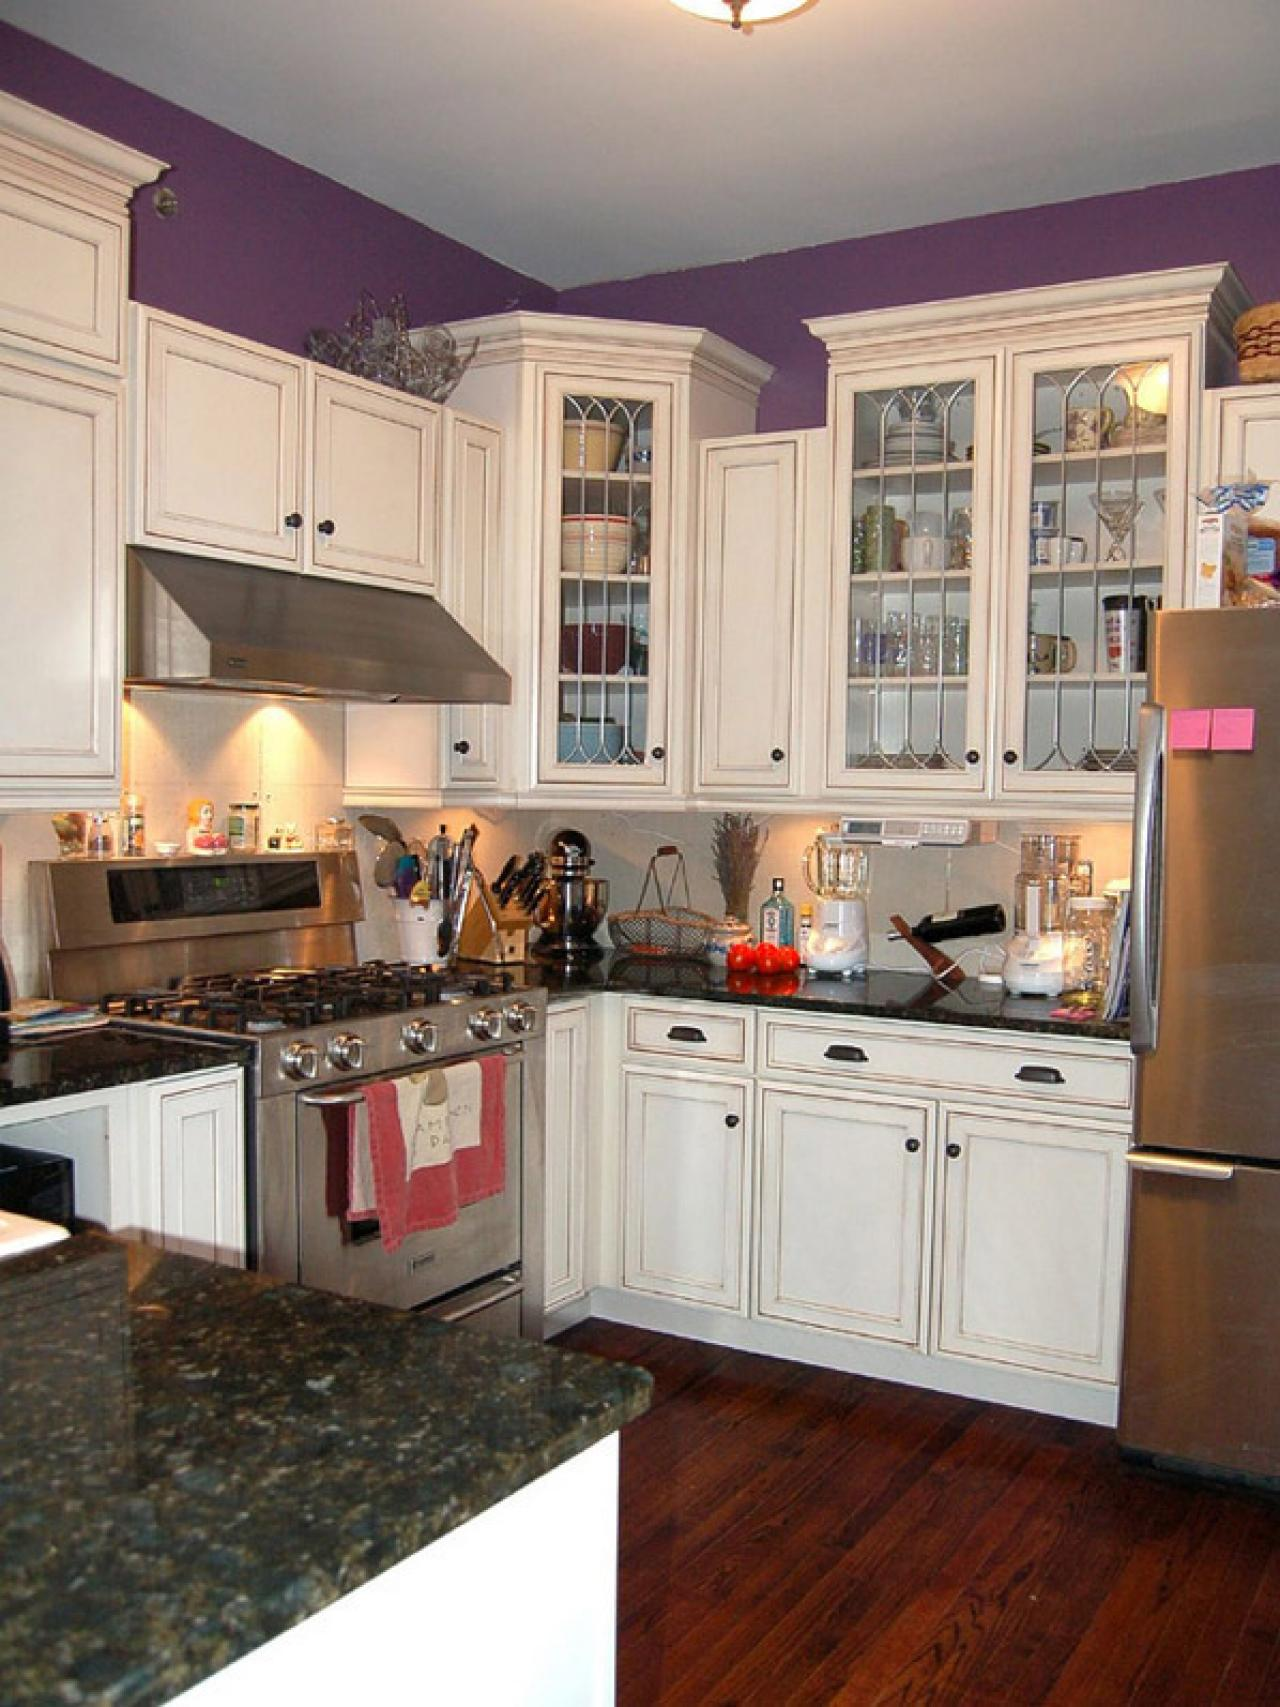 Countertops for Small Kitchens & Ideas From HGTV